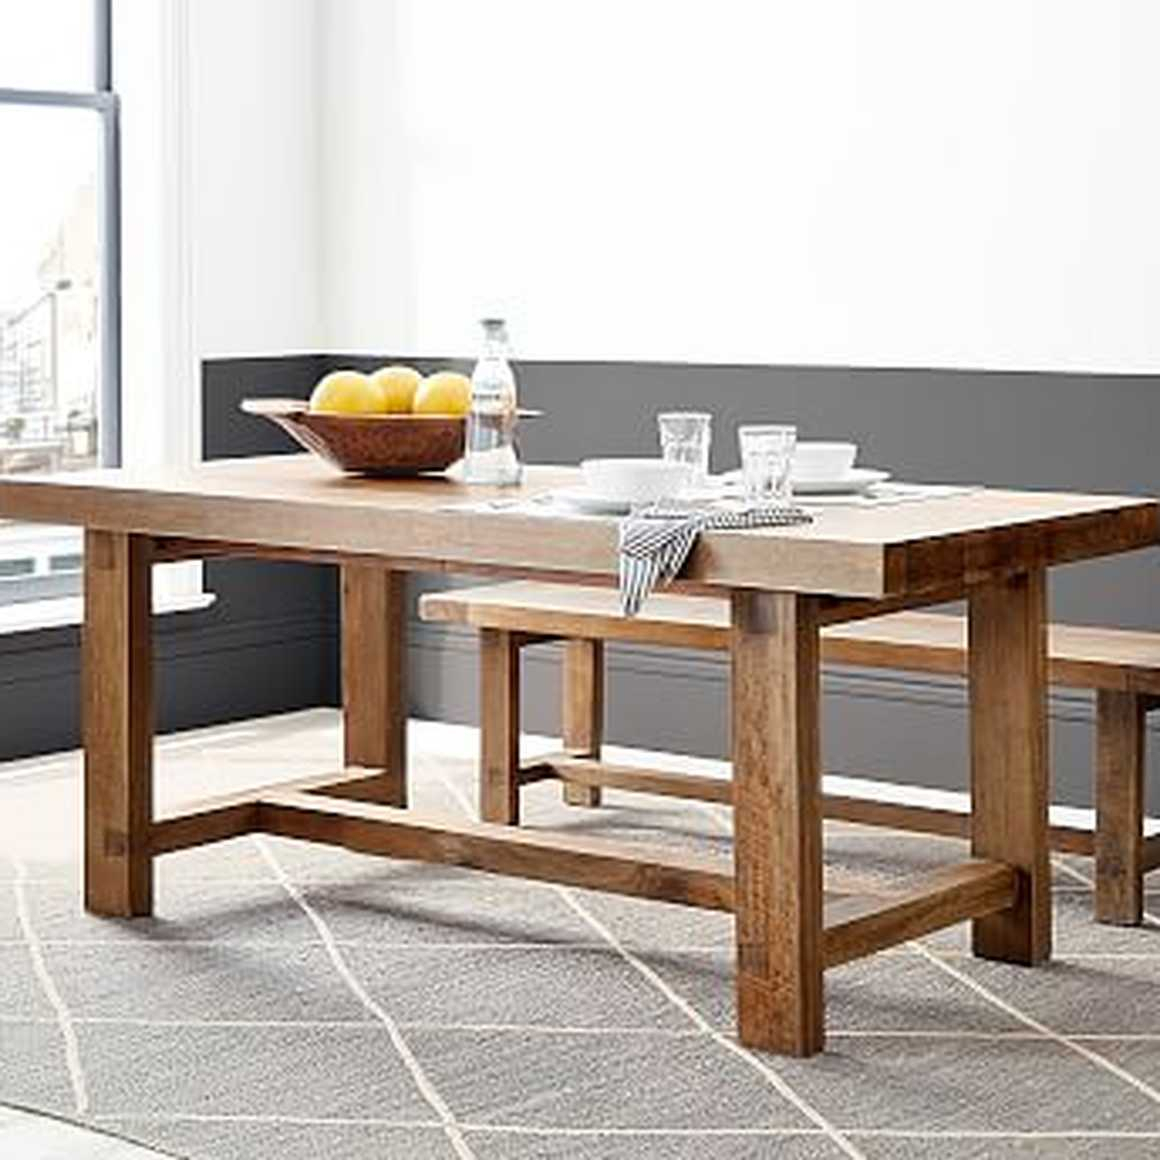 Reed Extending Dining Table, Antique Umberpottery Barn | Havenly Throughout Most Recent Reed Extending Dining Tables (View 2 of 25)